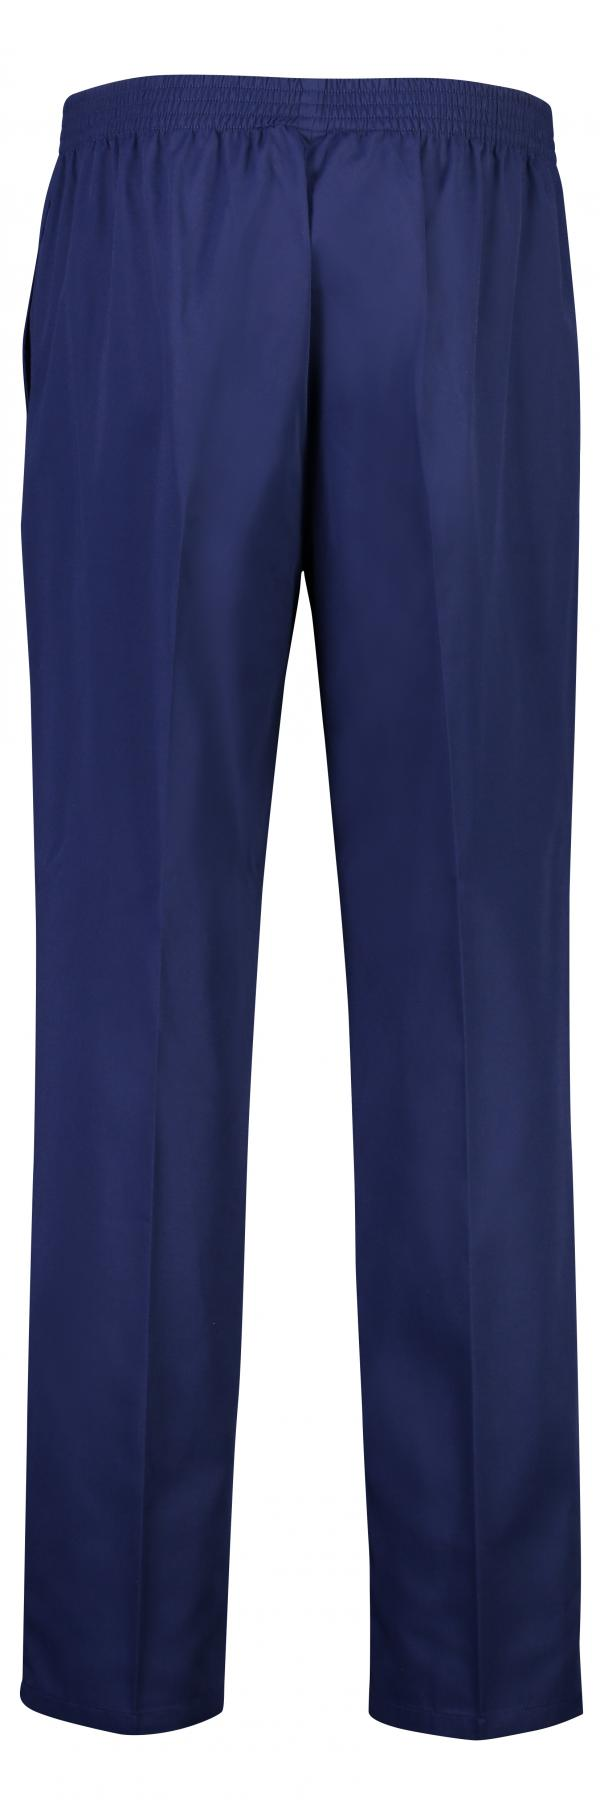 Pacifica Pants